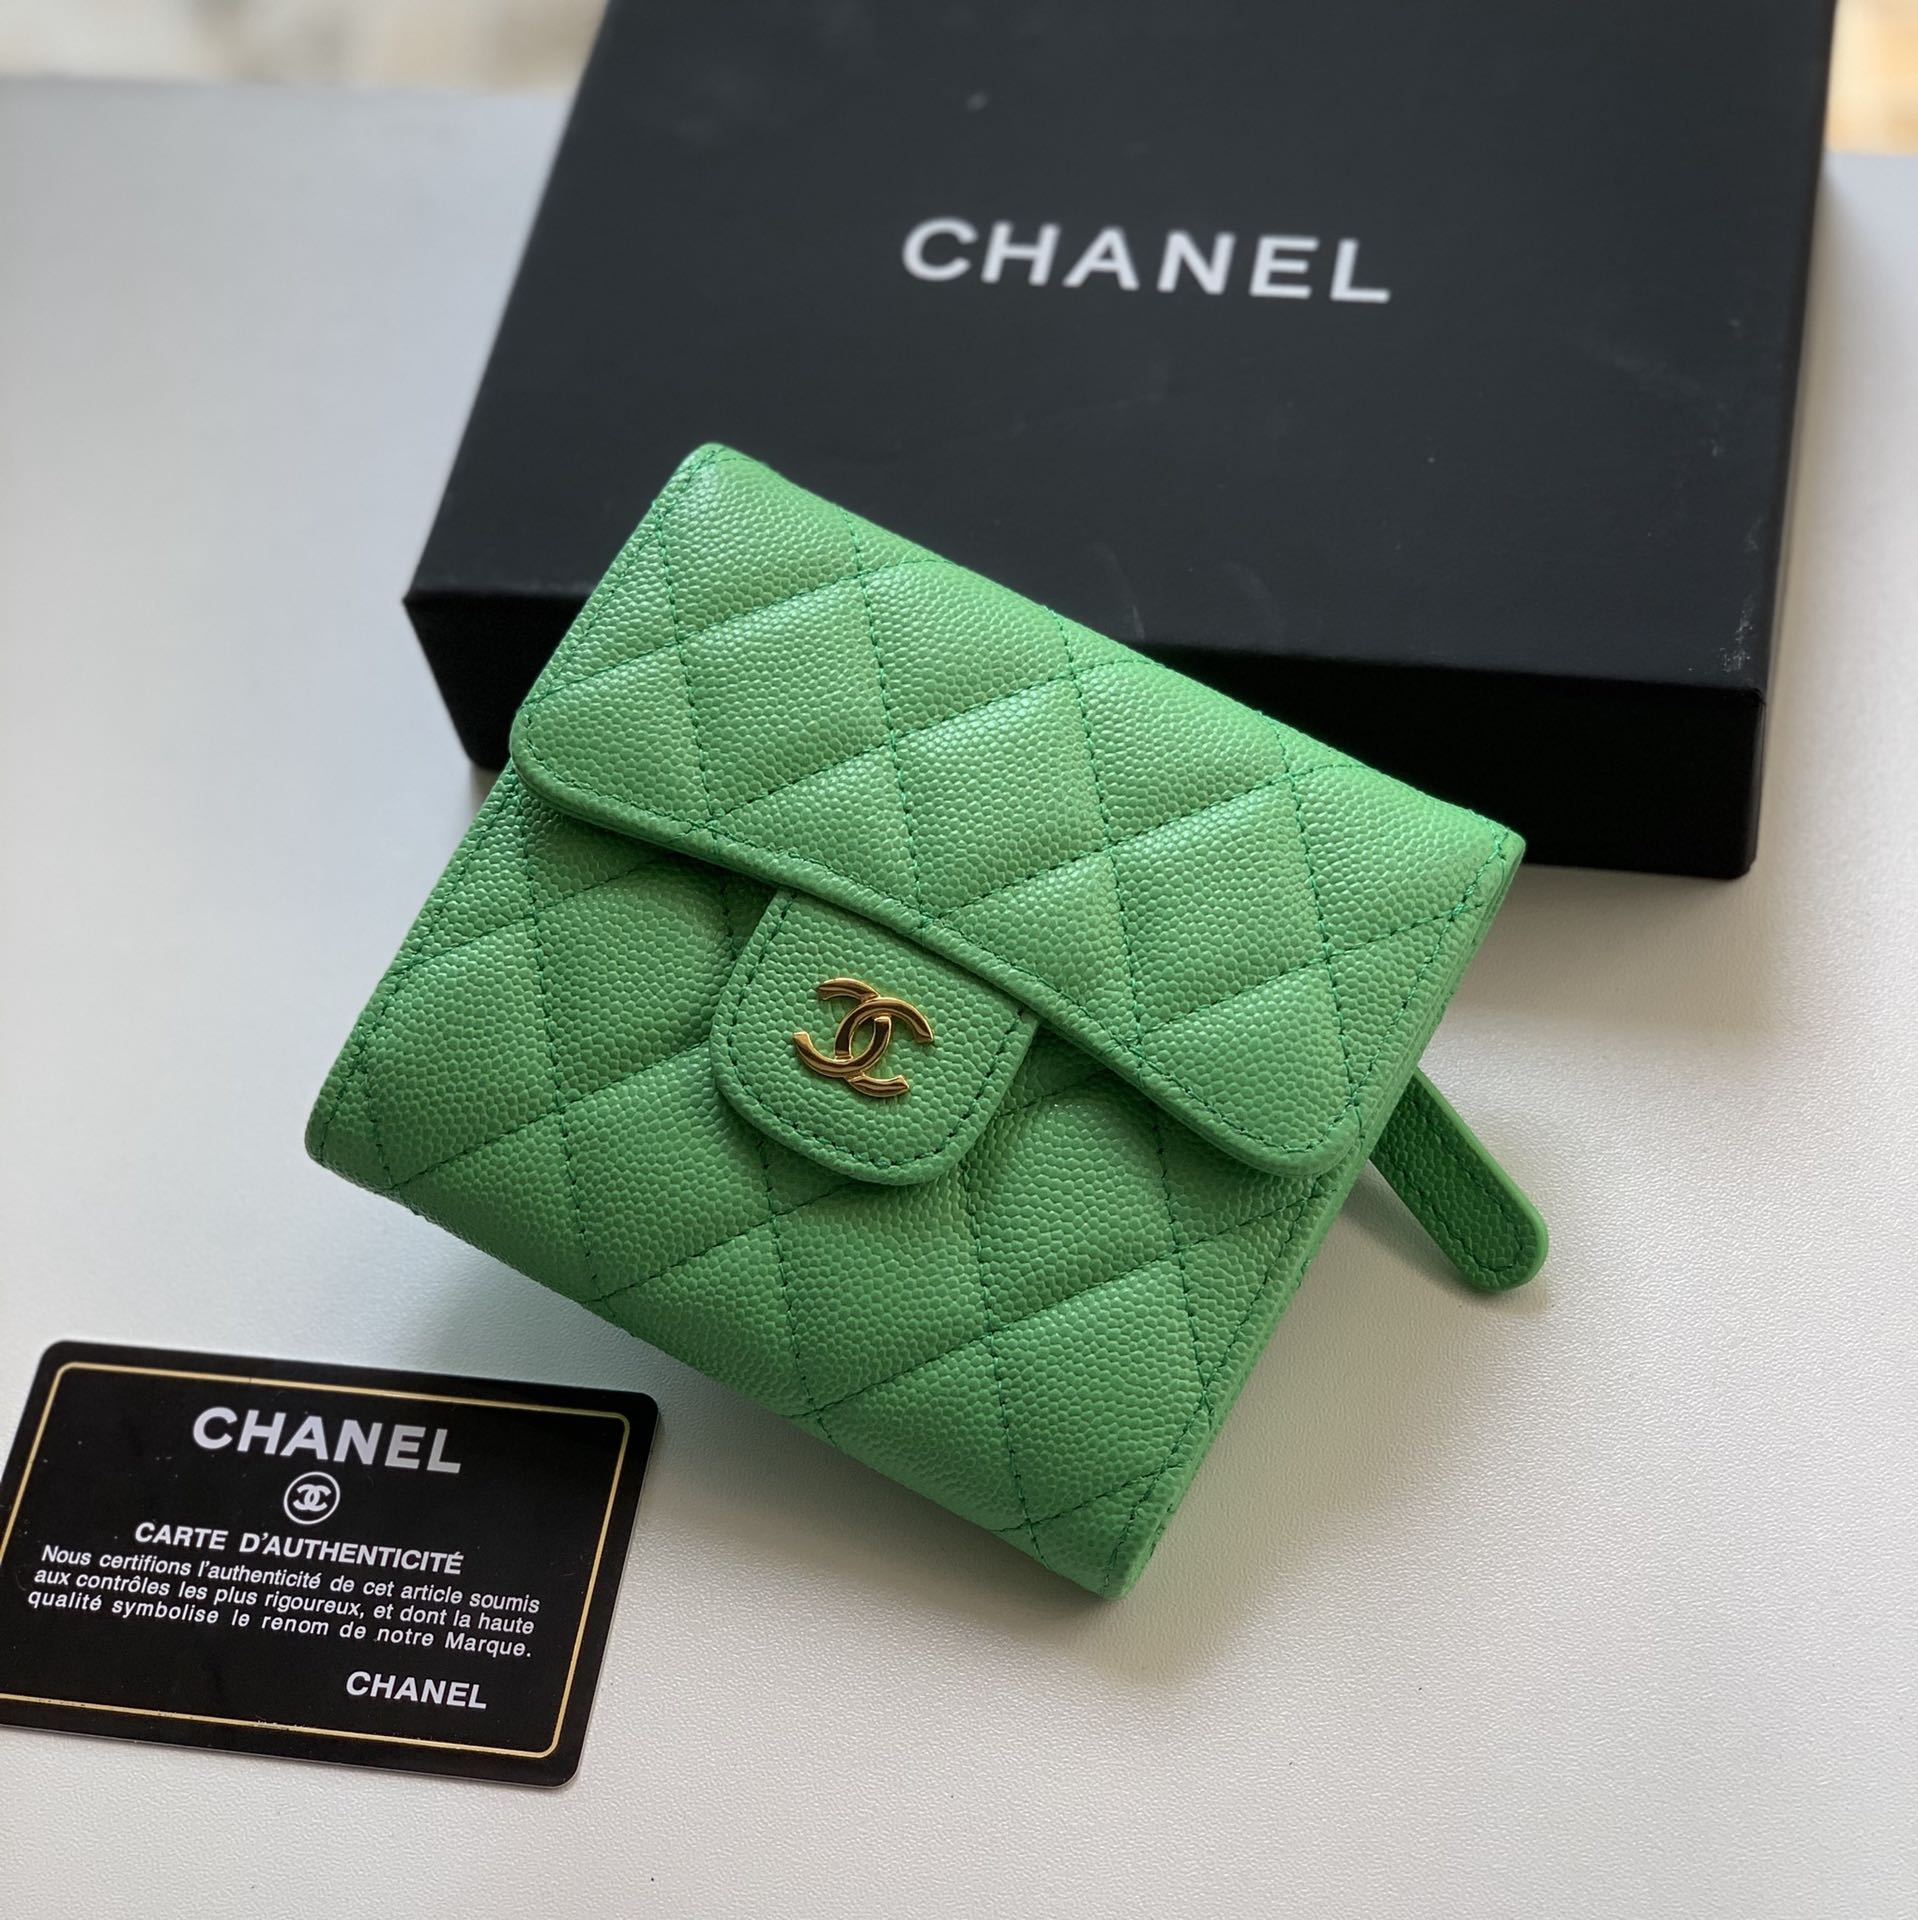 Top Quality Chaenl 82288 Classic Small Flap Wallet Green With Gold